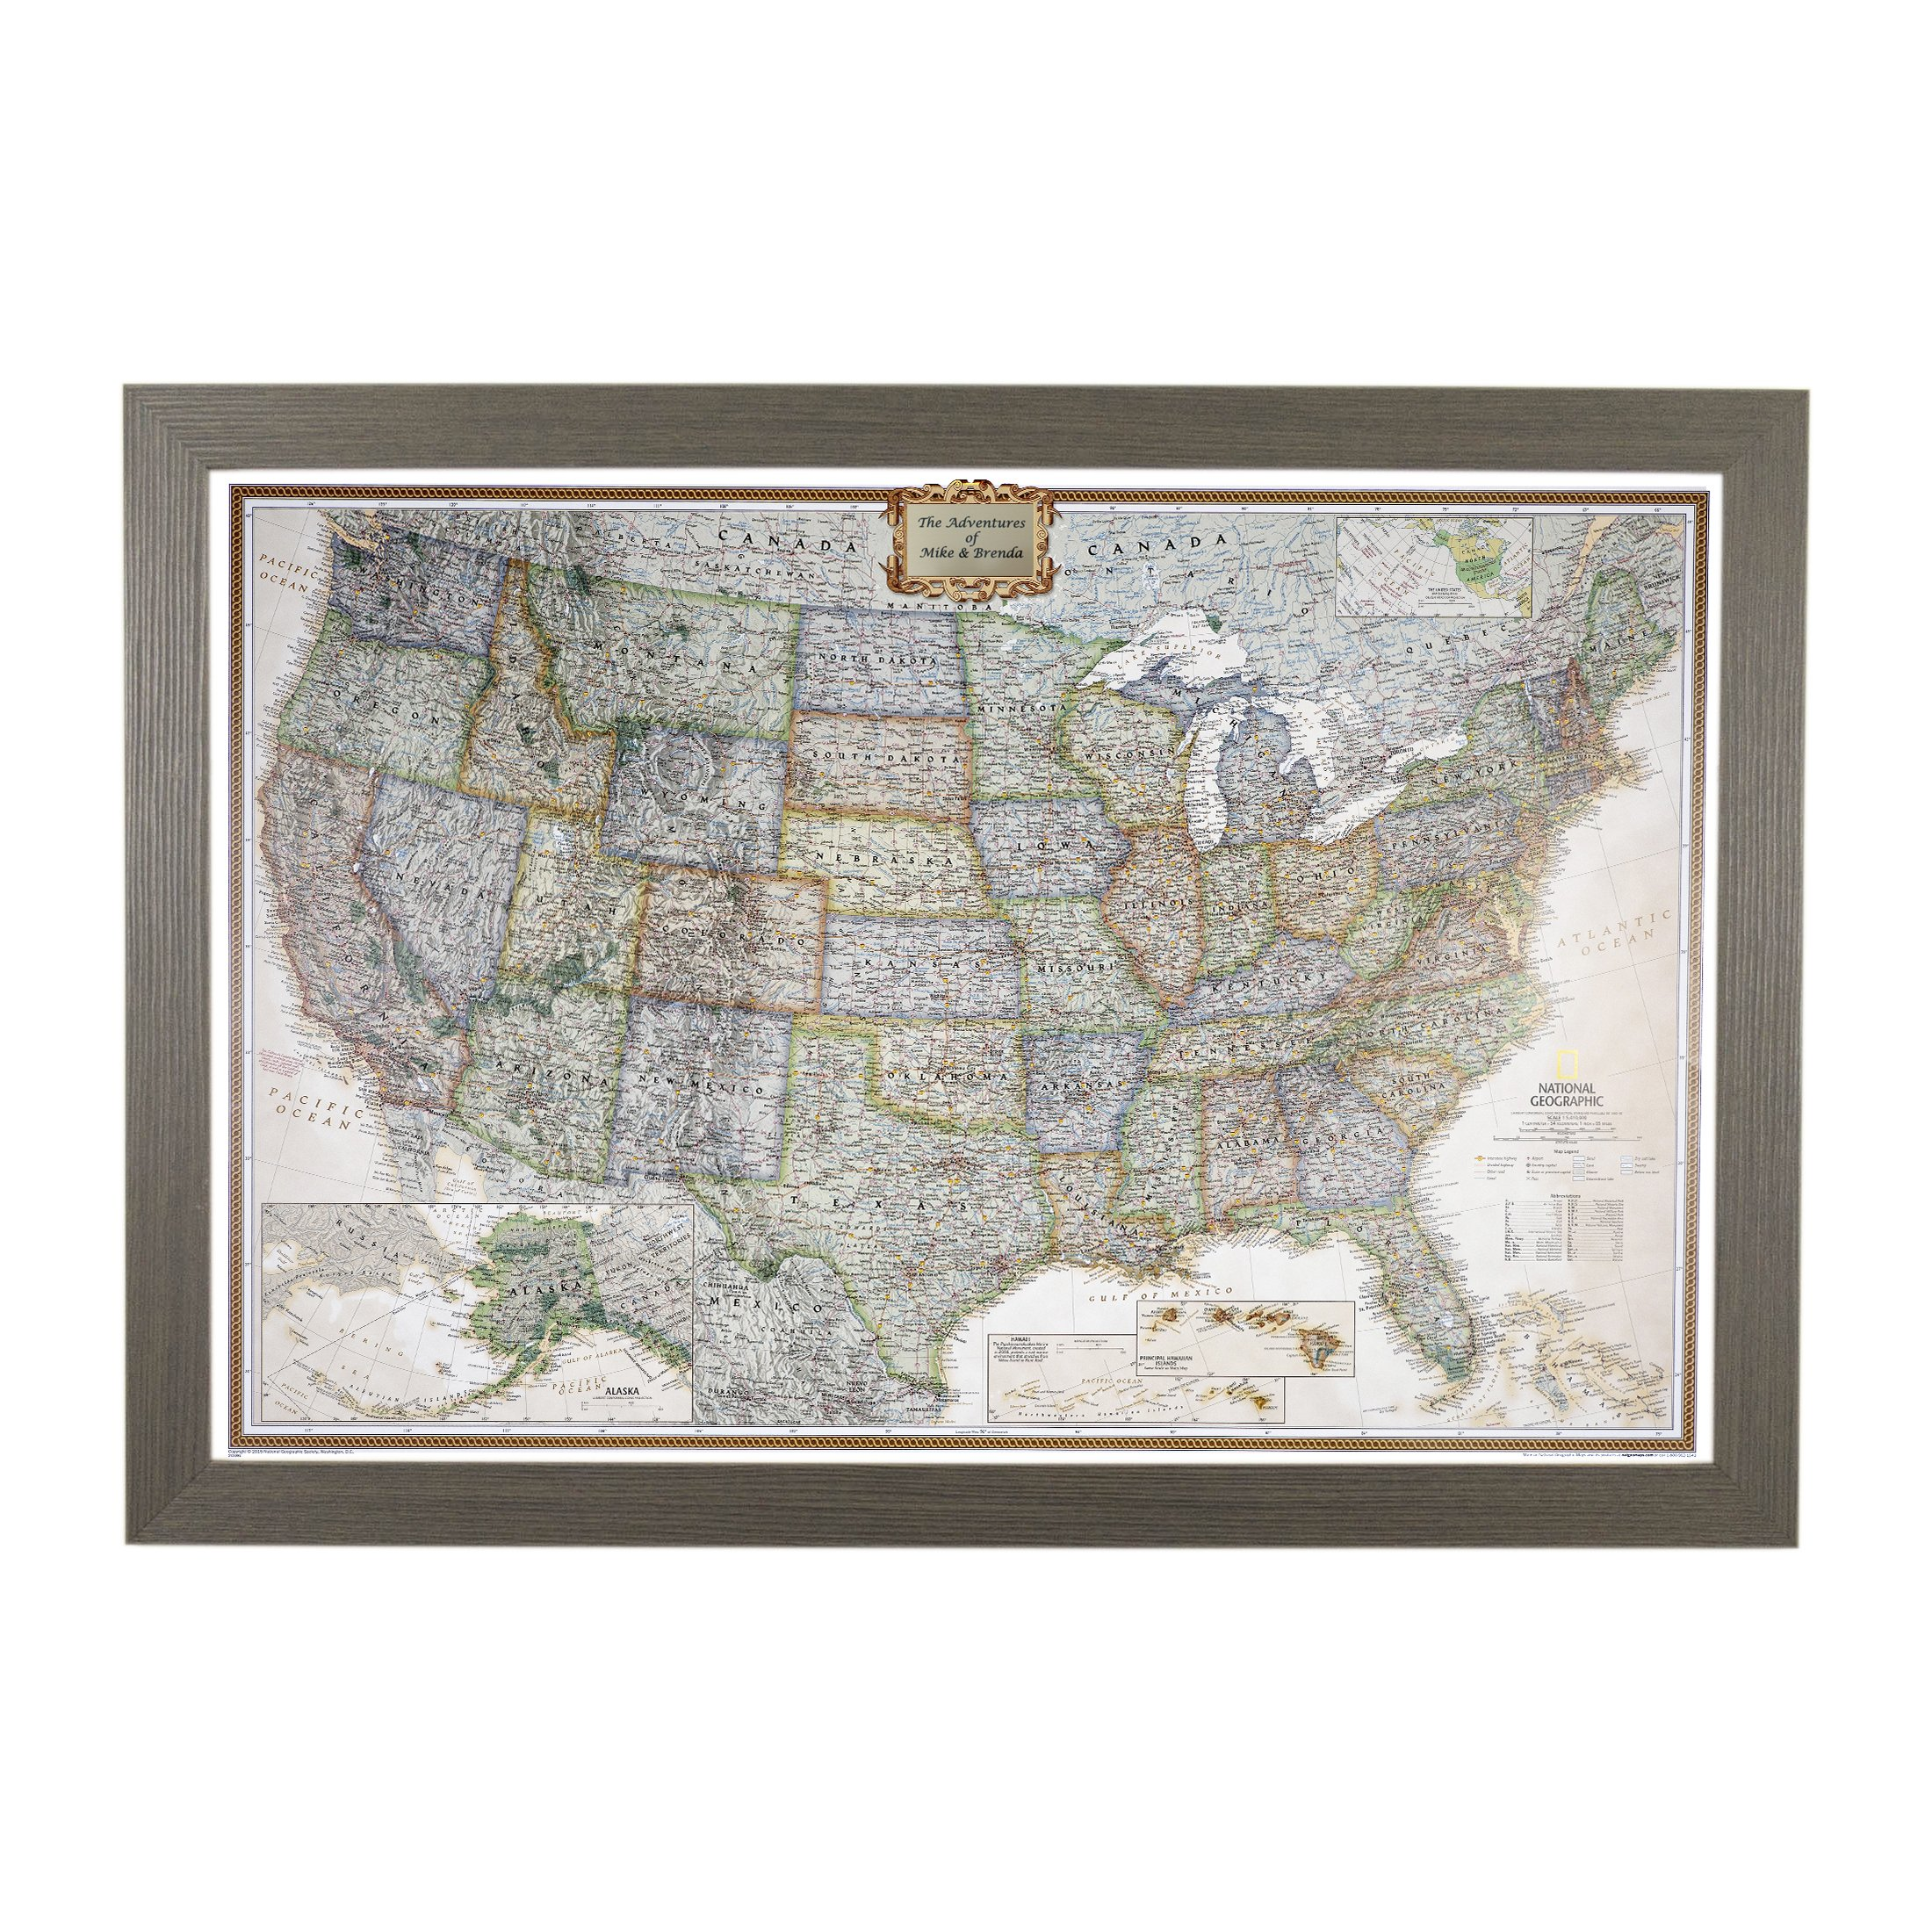 Personalized Executive US Push Pin Travel Map with Barnwood Gray Frame and Pins 24 x 36